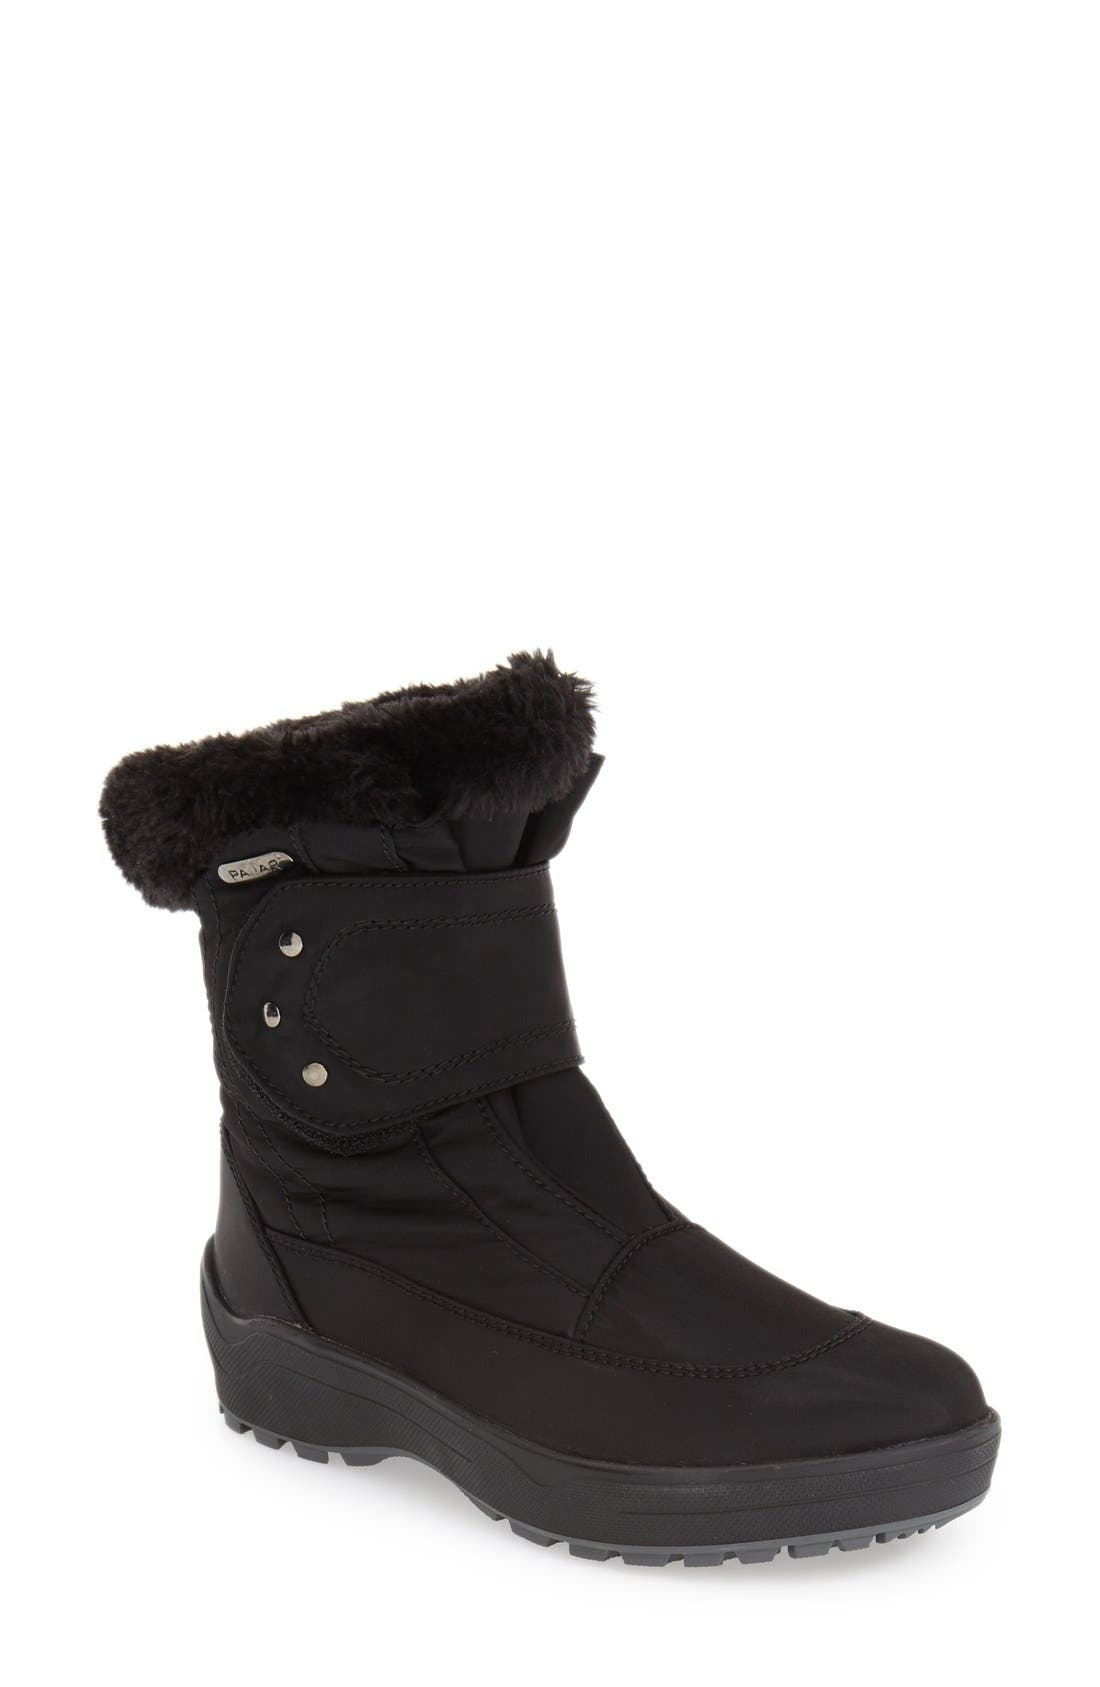 PAJAR Shoes 'Moscou' Snow Boot